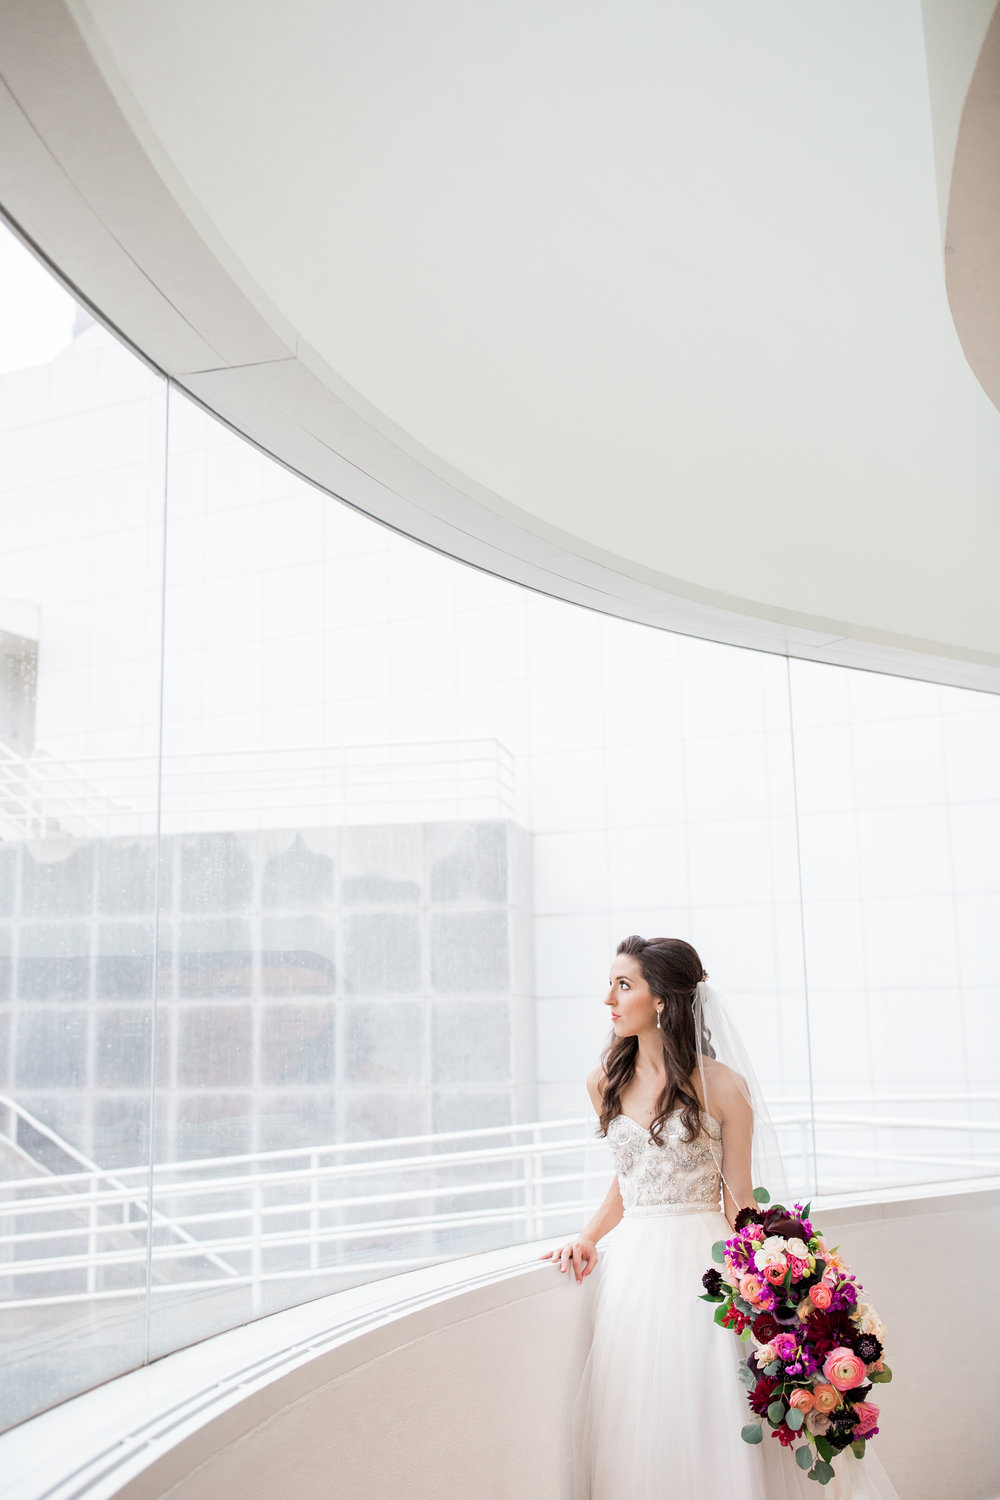 Krista Turner Photography - High Museum Wedding - Atlanta Wedding Photographer (4 of 13).JPG